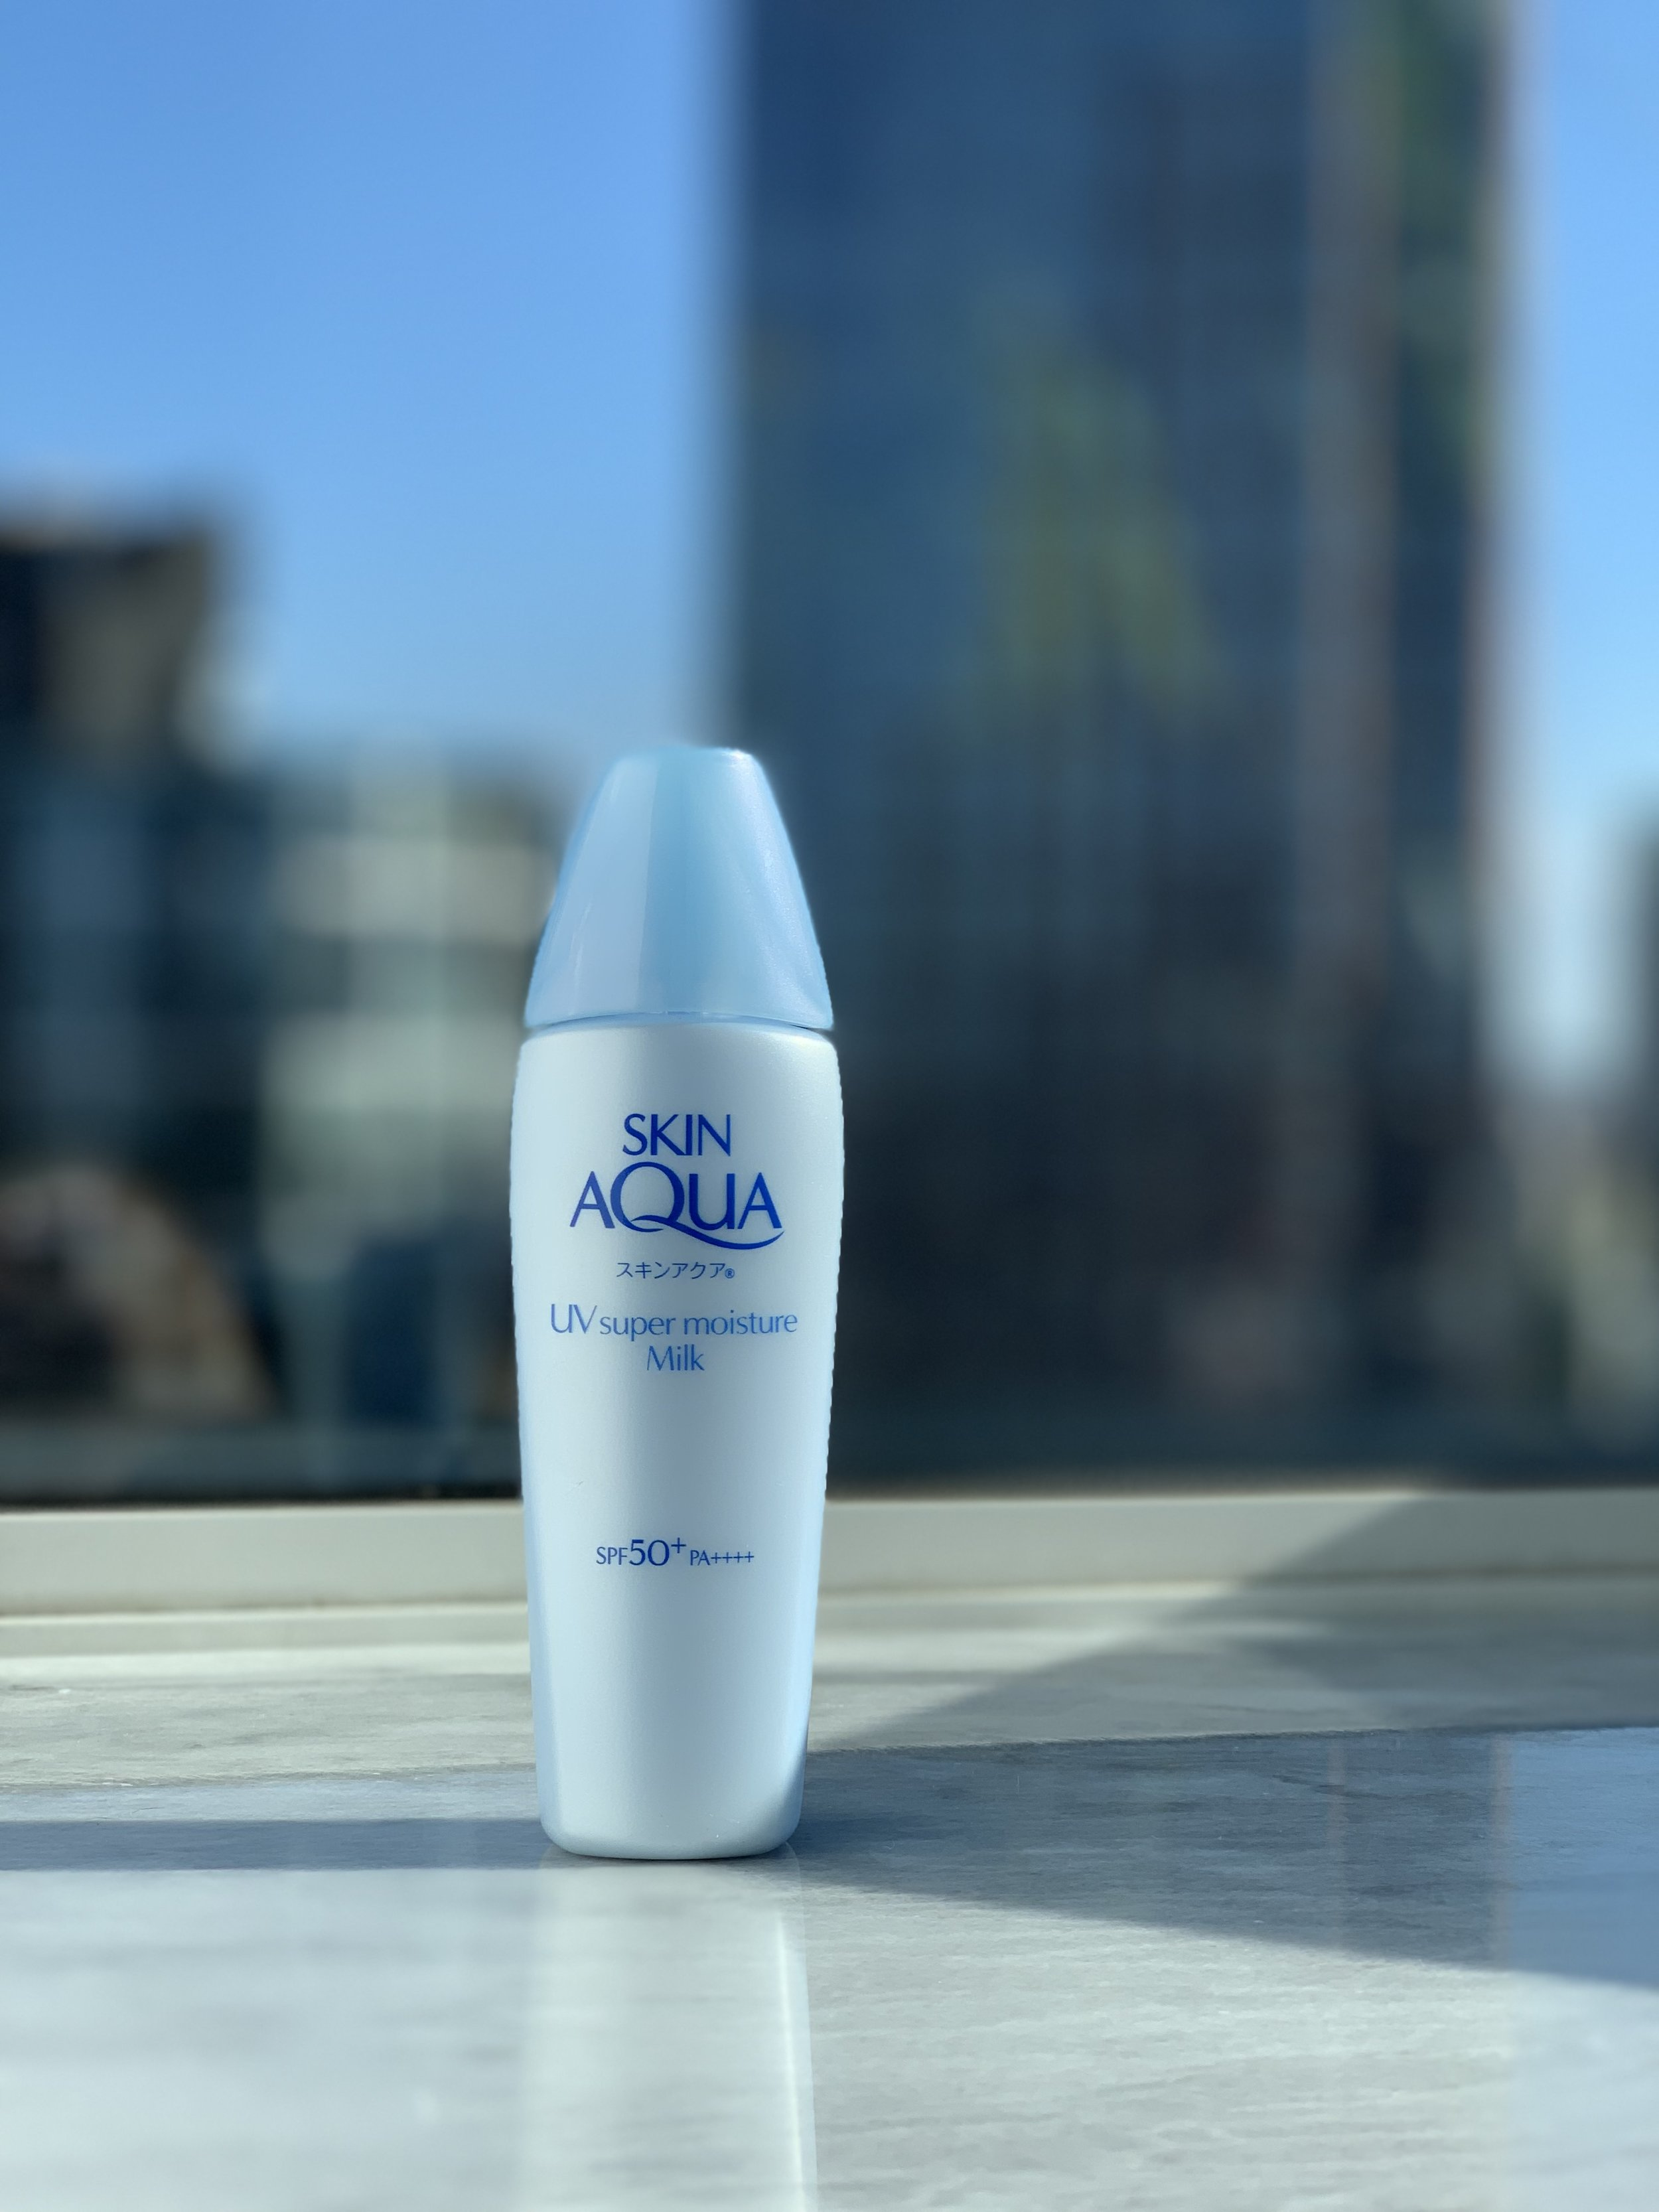 Full disclosure: The Skin Aqua Super Moisture Milk formula contains a combination of both a mineral and a chemical sunscreen filter.